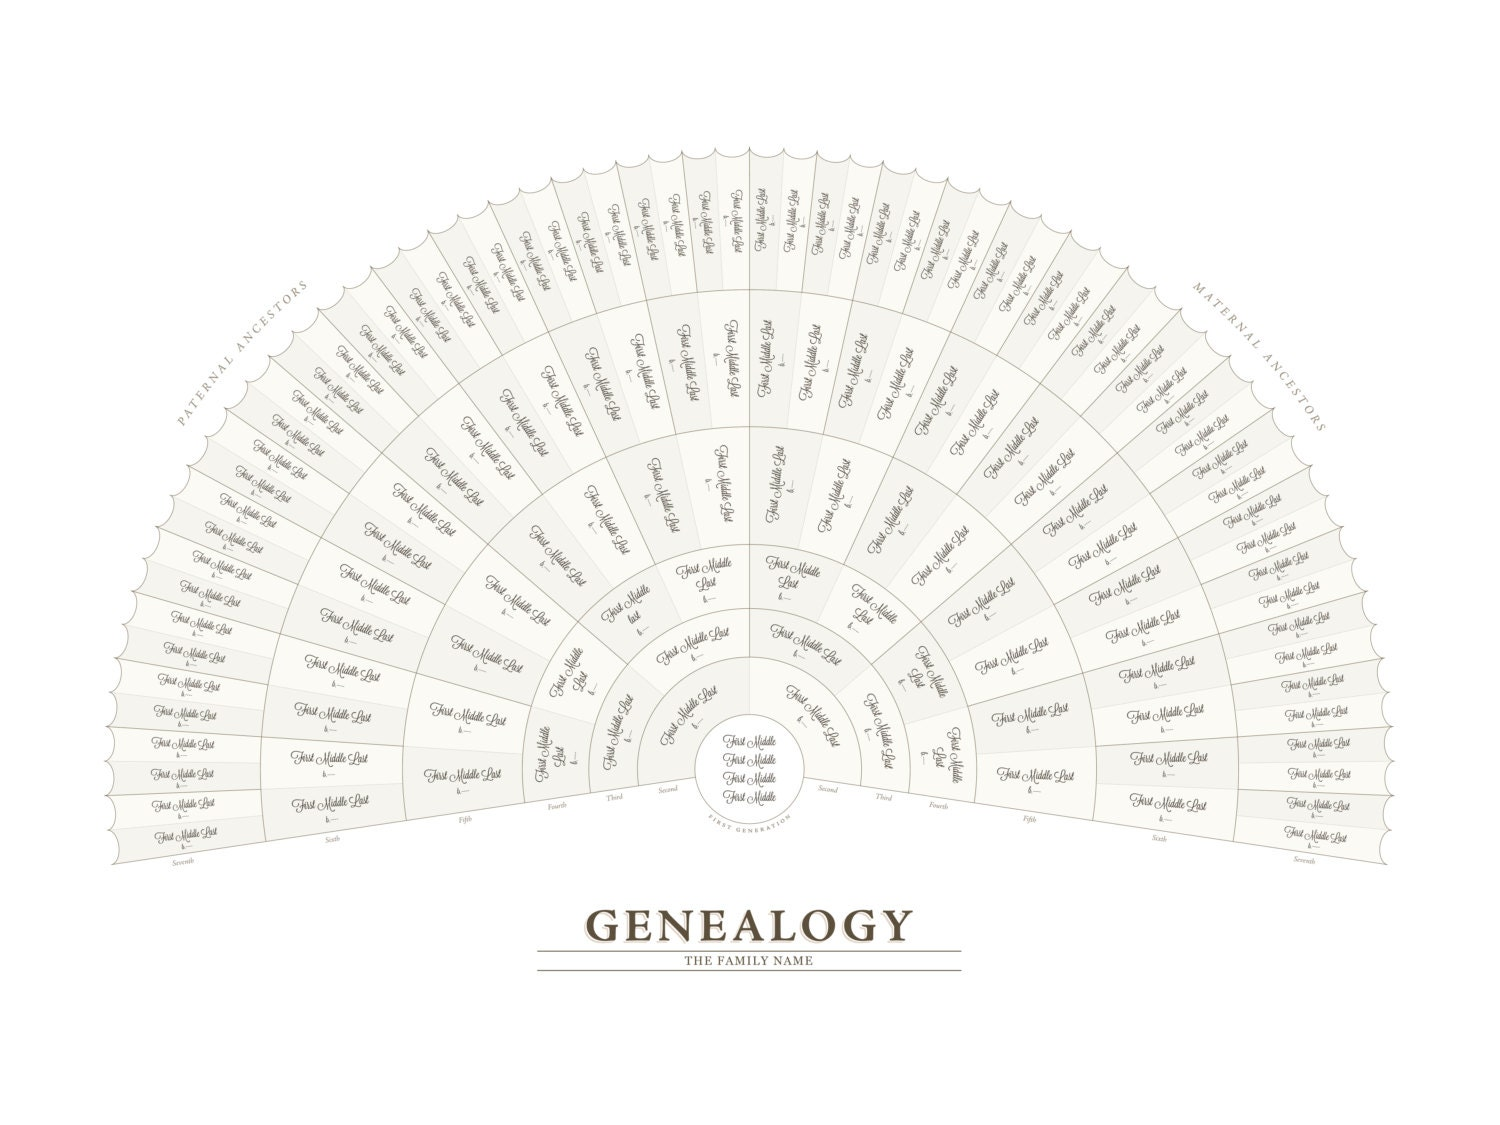 genealogy fan chart adobe illustrator template. Black Bedroom Furniture Sets. Home Design Ideas